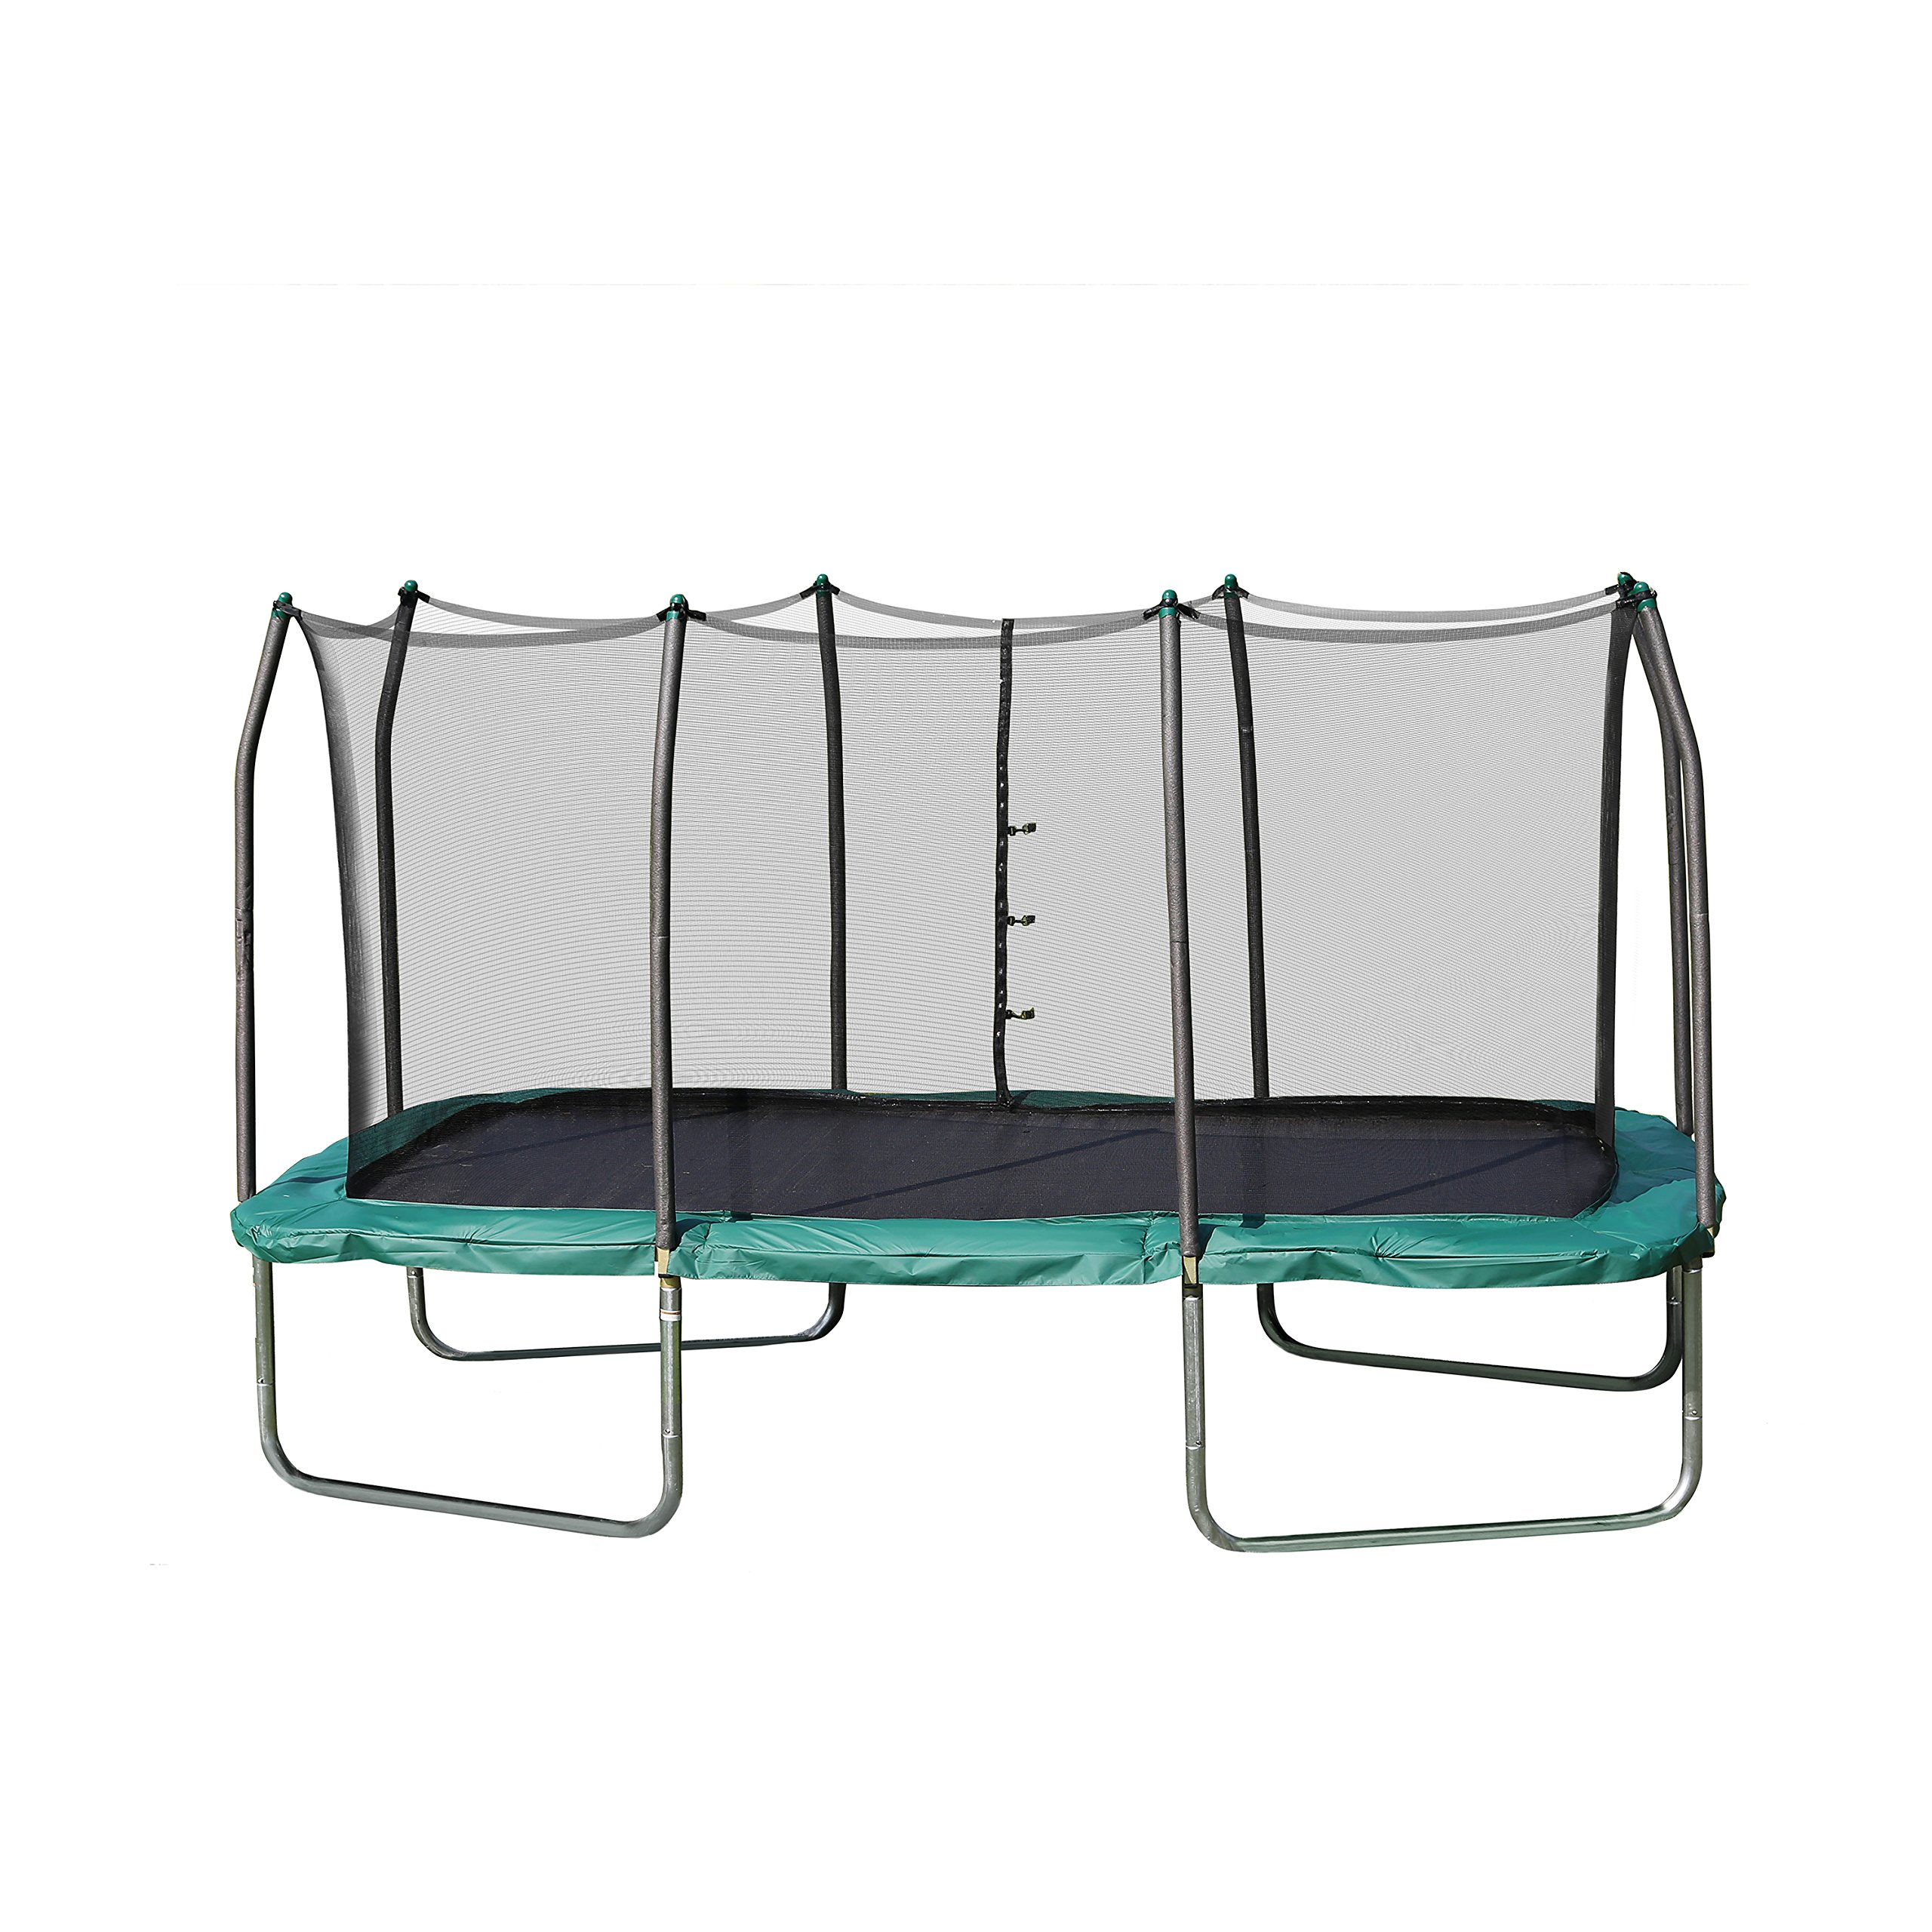 Skywalker Trampolines 14-Foot Rectangle Trampoline with Enclosure Net - Shape Provides Great Bounce - Gymnast Trampoline - Added Safety Features - Meets or Exceeds ASTM - Made to Last by Skywalker Trampolines